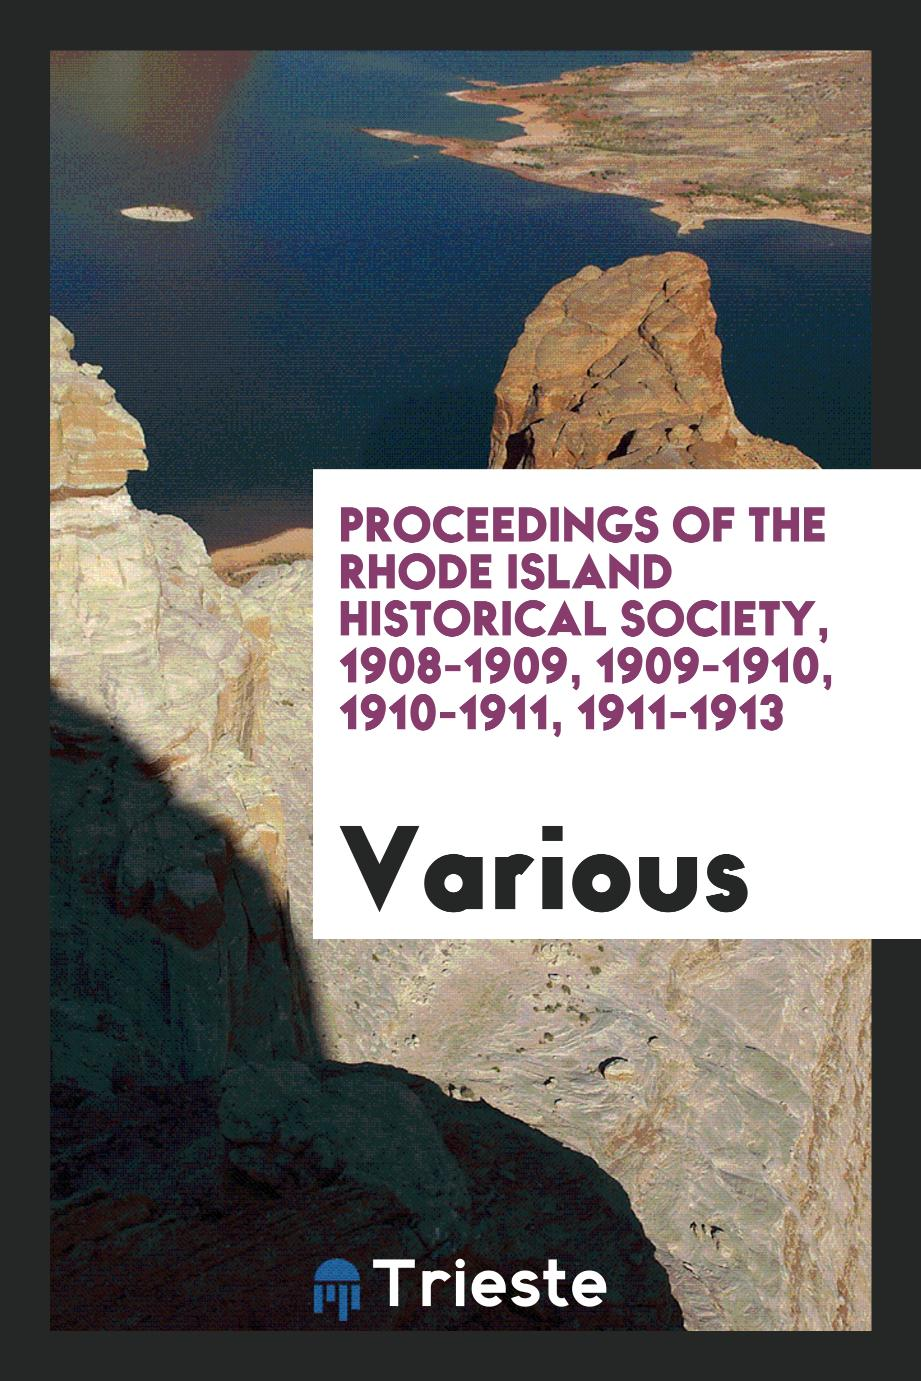 Proceedings of the Rhode Island Historical Society, 1908-1909, 1909-1910, 1910-1911, 1911-1913